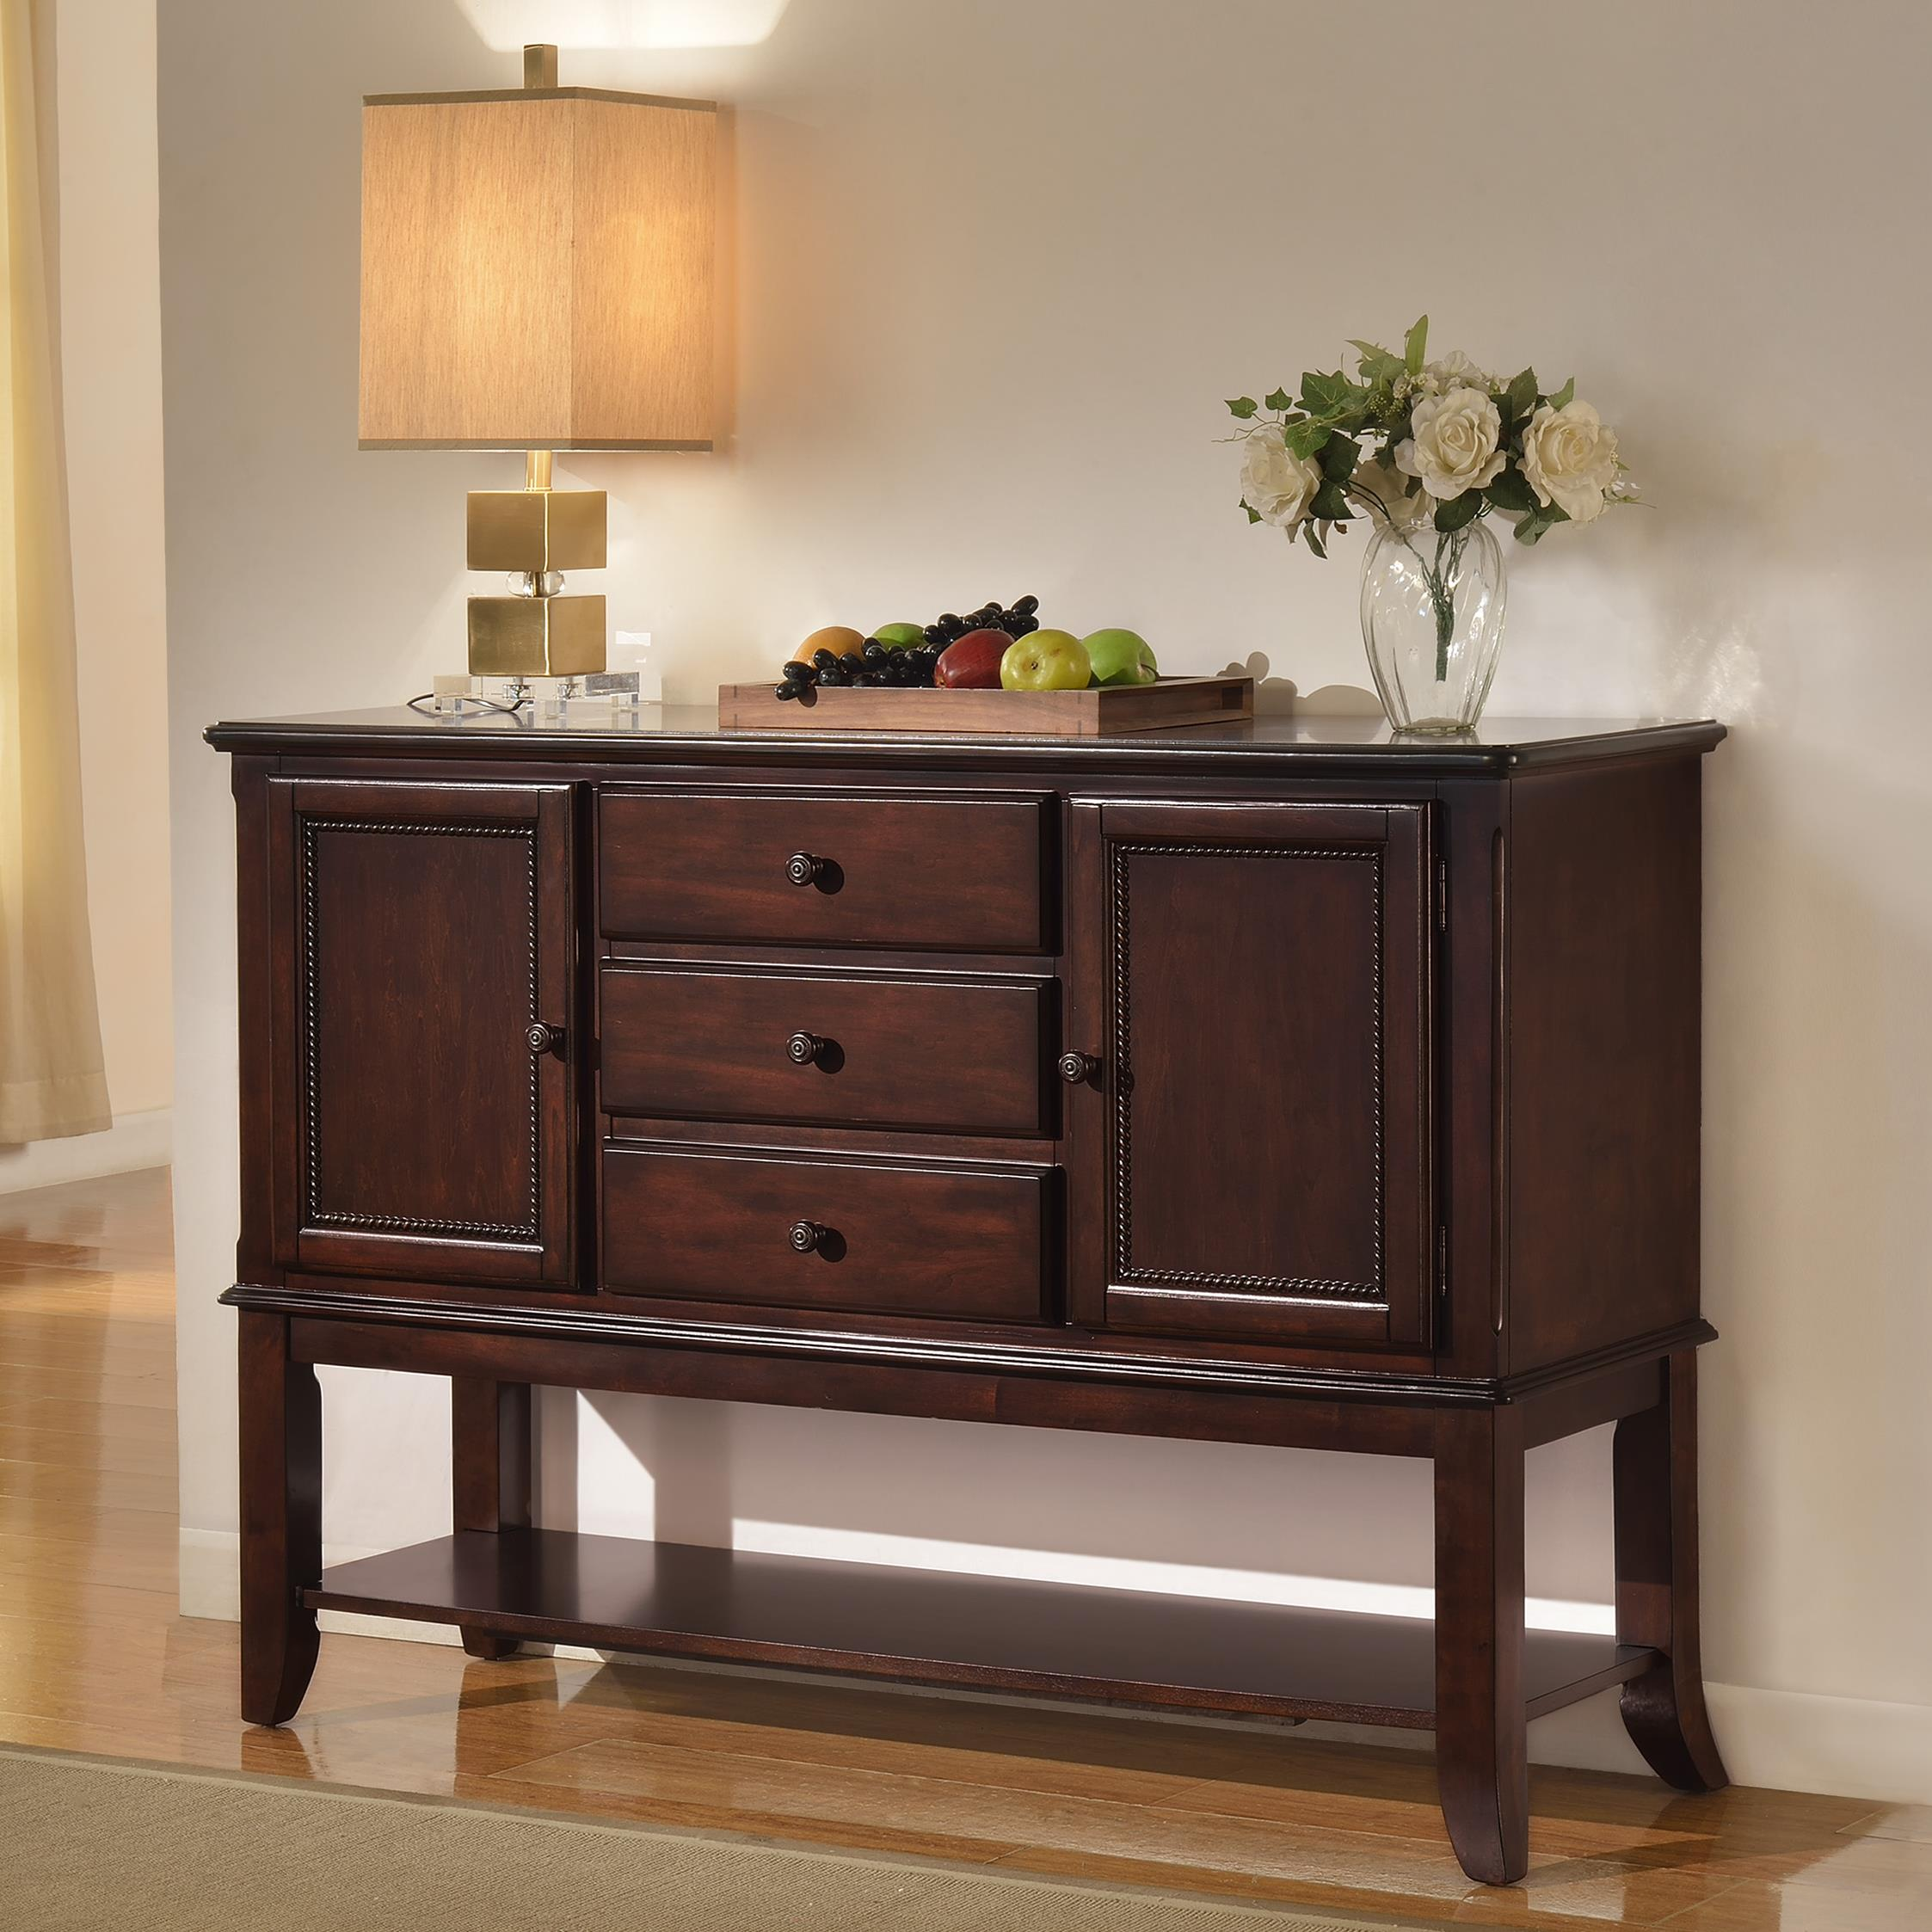 Crown Mark Merlot Side Board - Item Number: 2145-SB